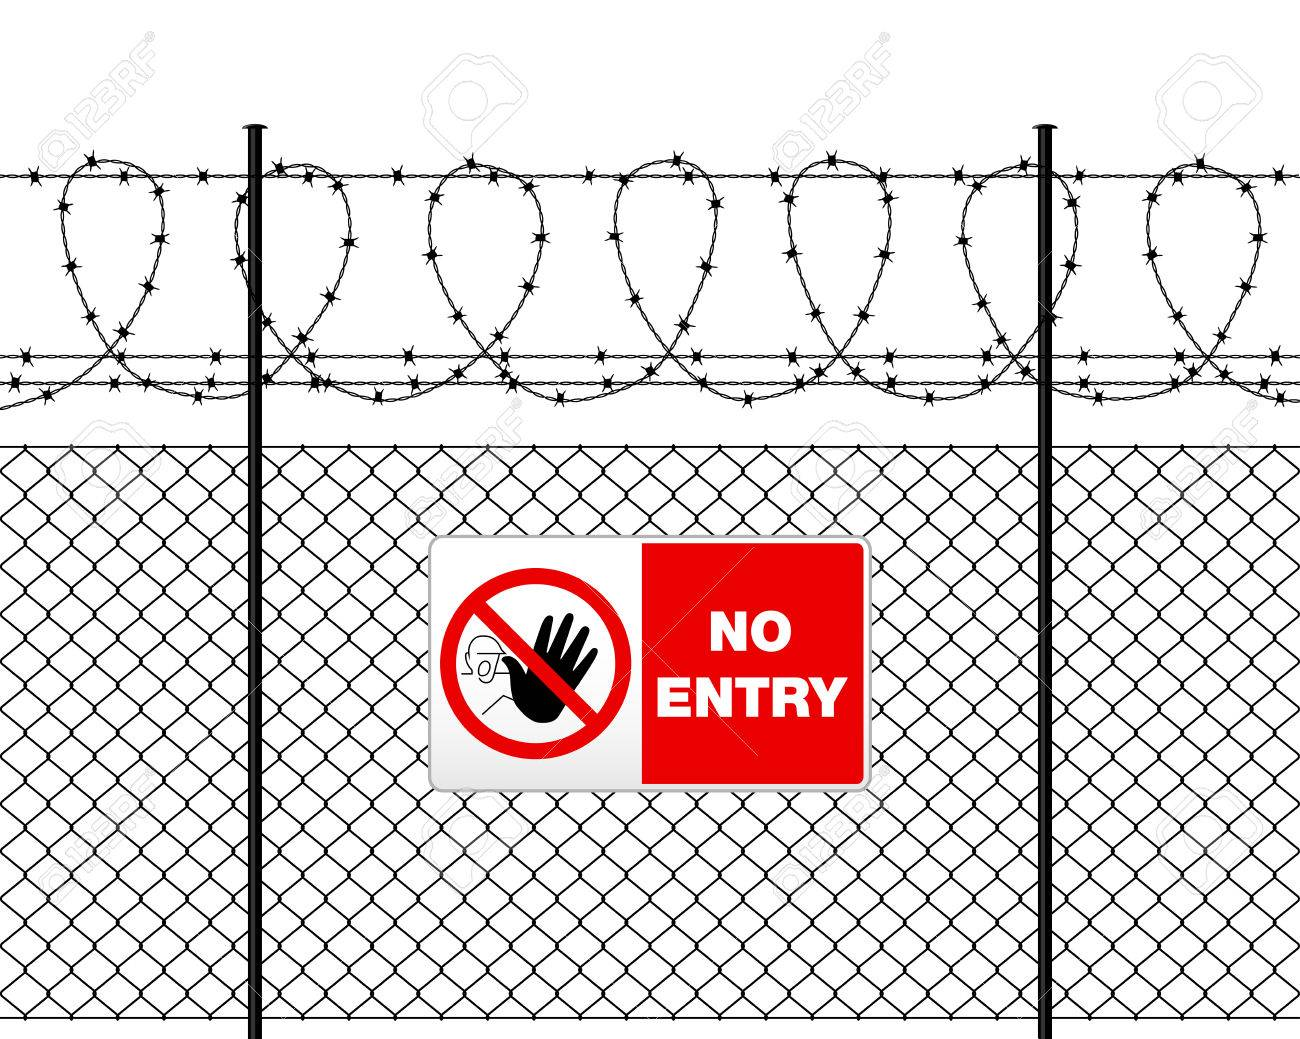 Fence with barbed wire and sign NO ENTRY. Metal sign NO ENTRY on metal fence with barbed wire. Wire fence isolated on white. - 57639628